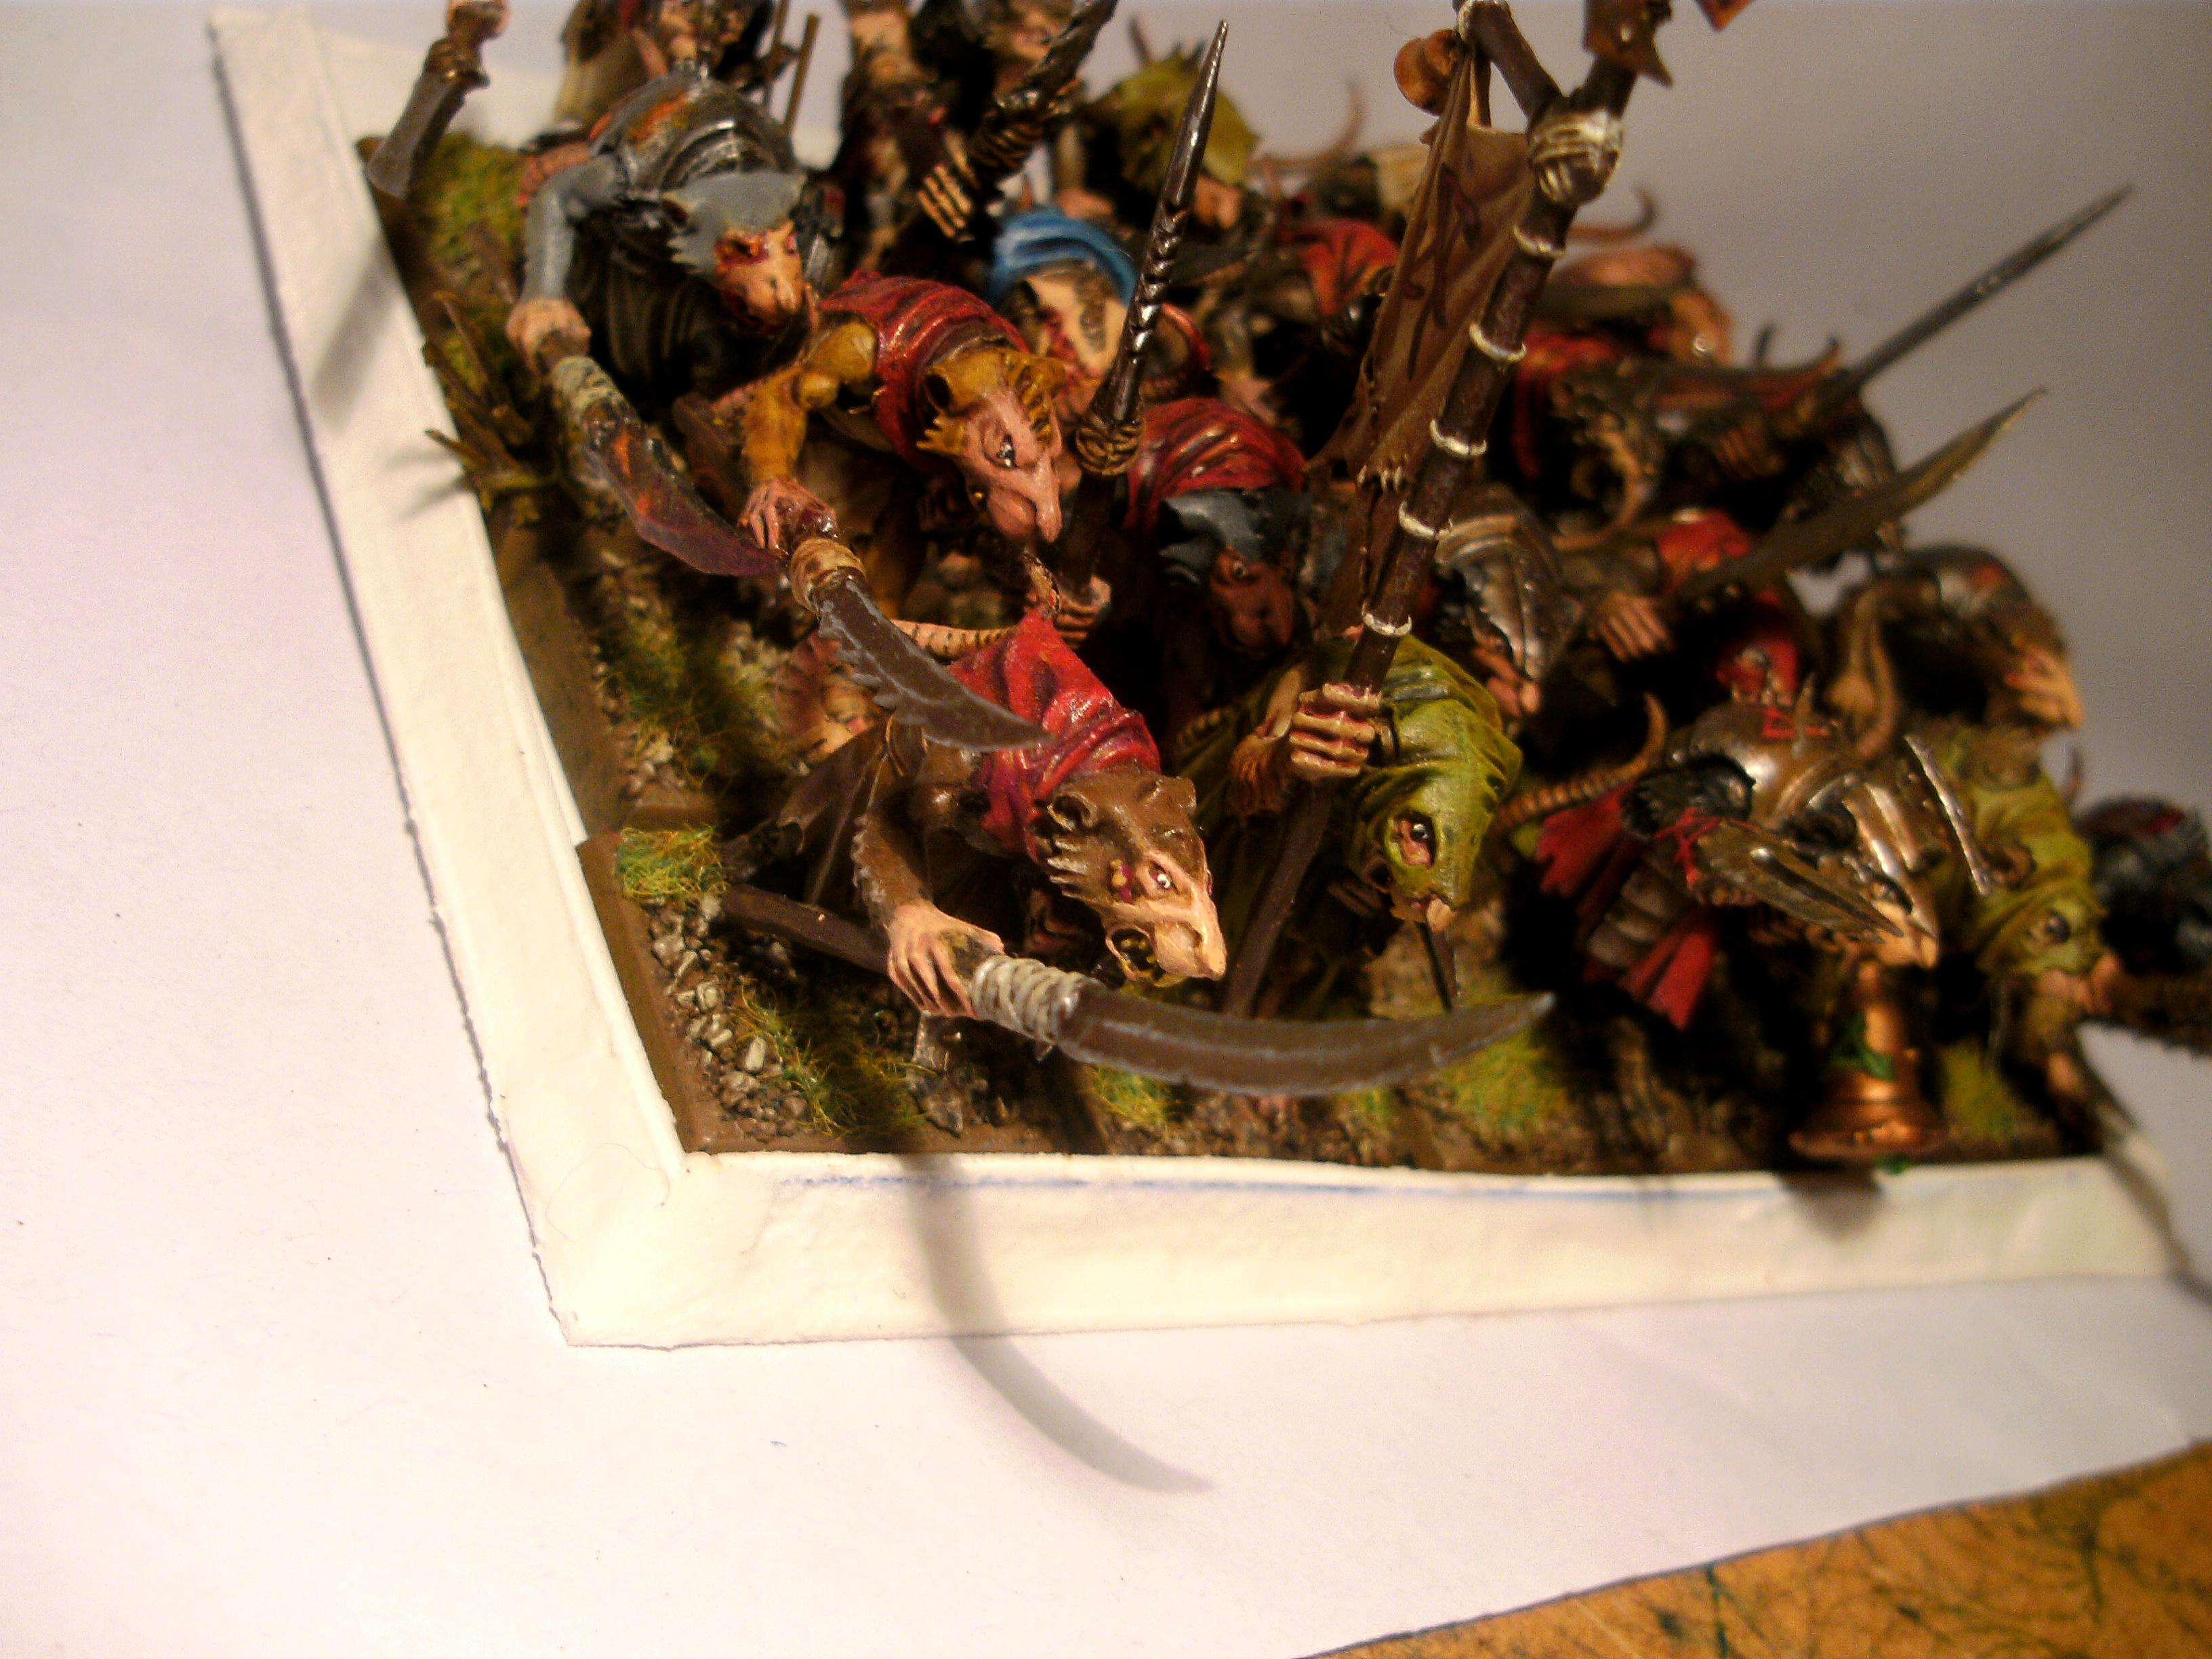 Clanrats, Skaven, Skaven with boils and such